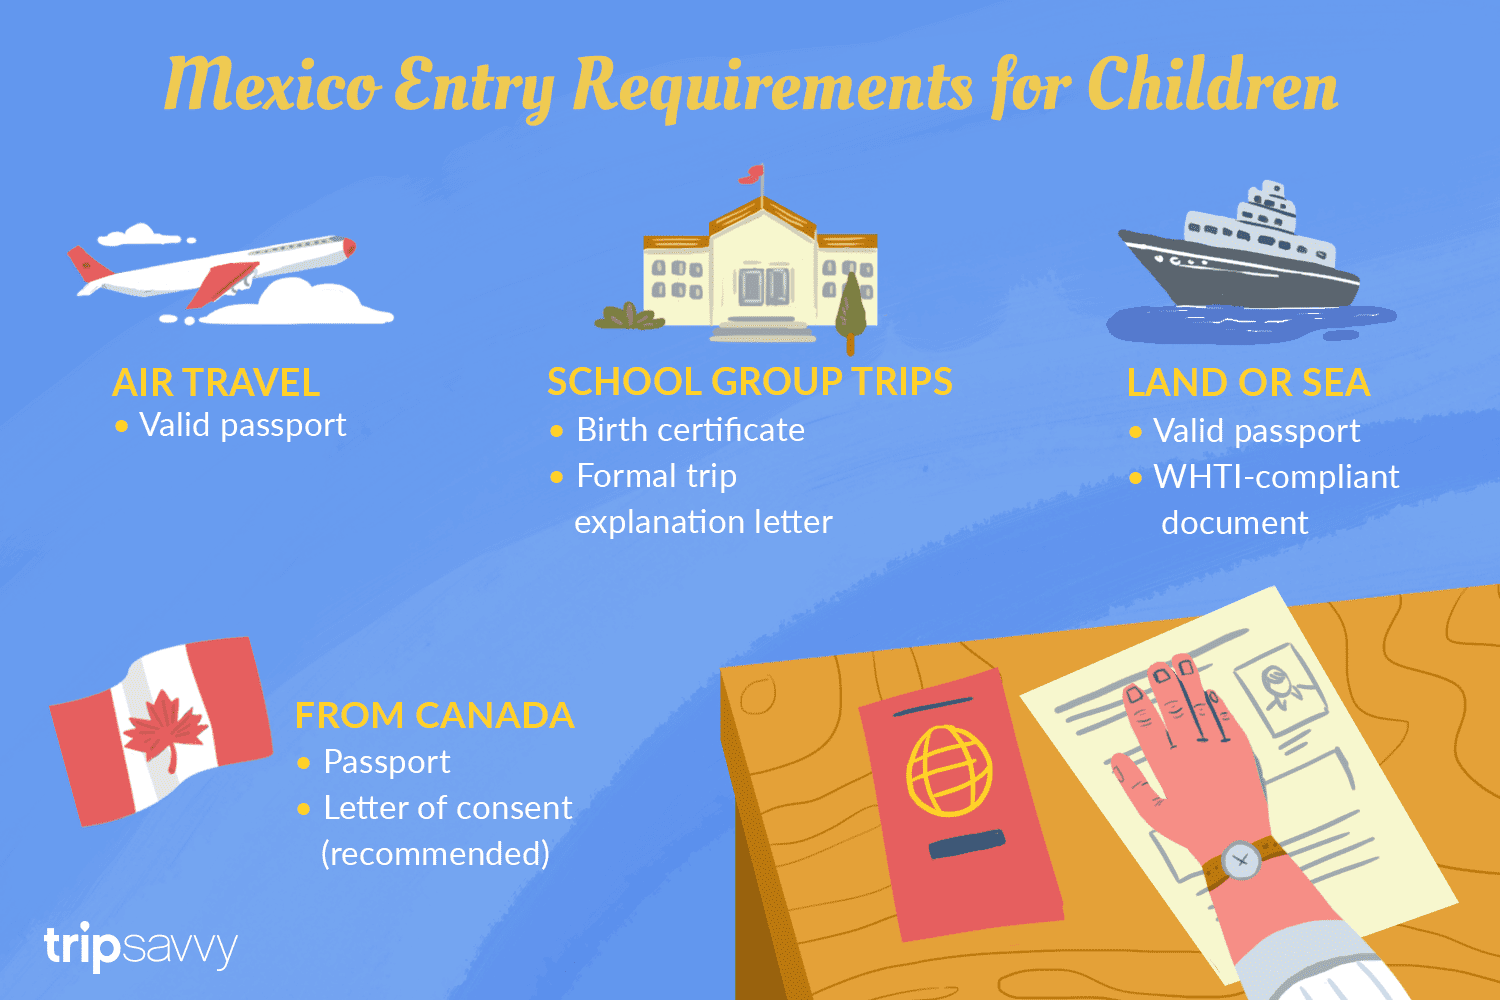 Passports And Mexico Entry Requirements For Children